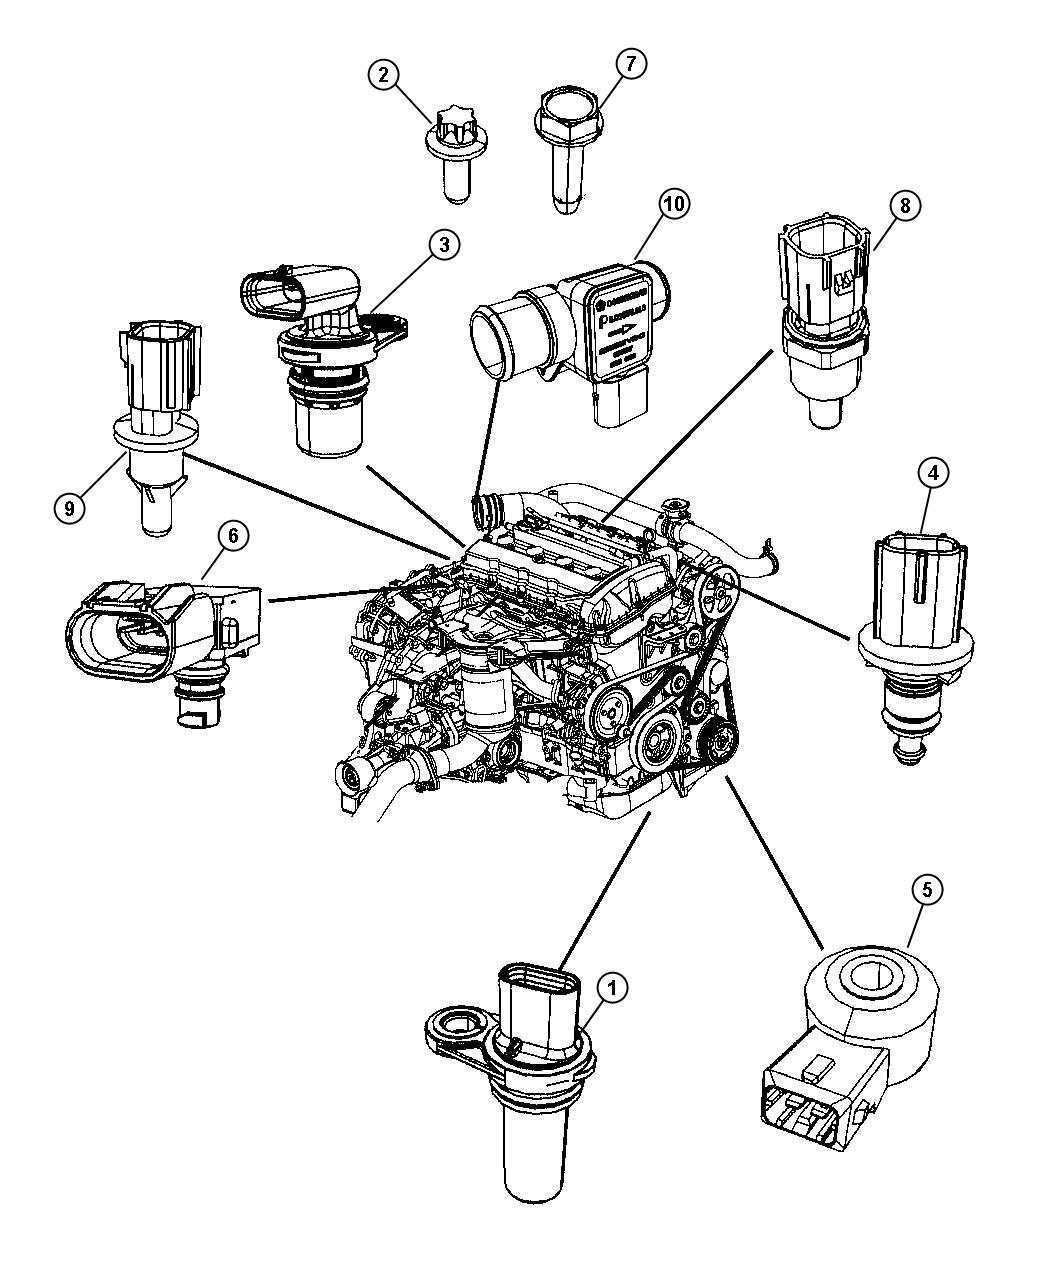 Dodge Journey Wiring Diagram Get Free Image About Wiring Diagram